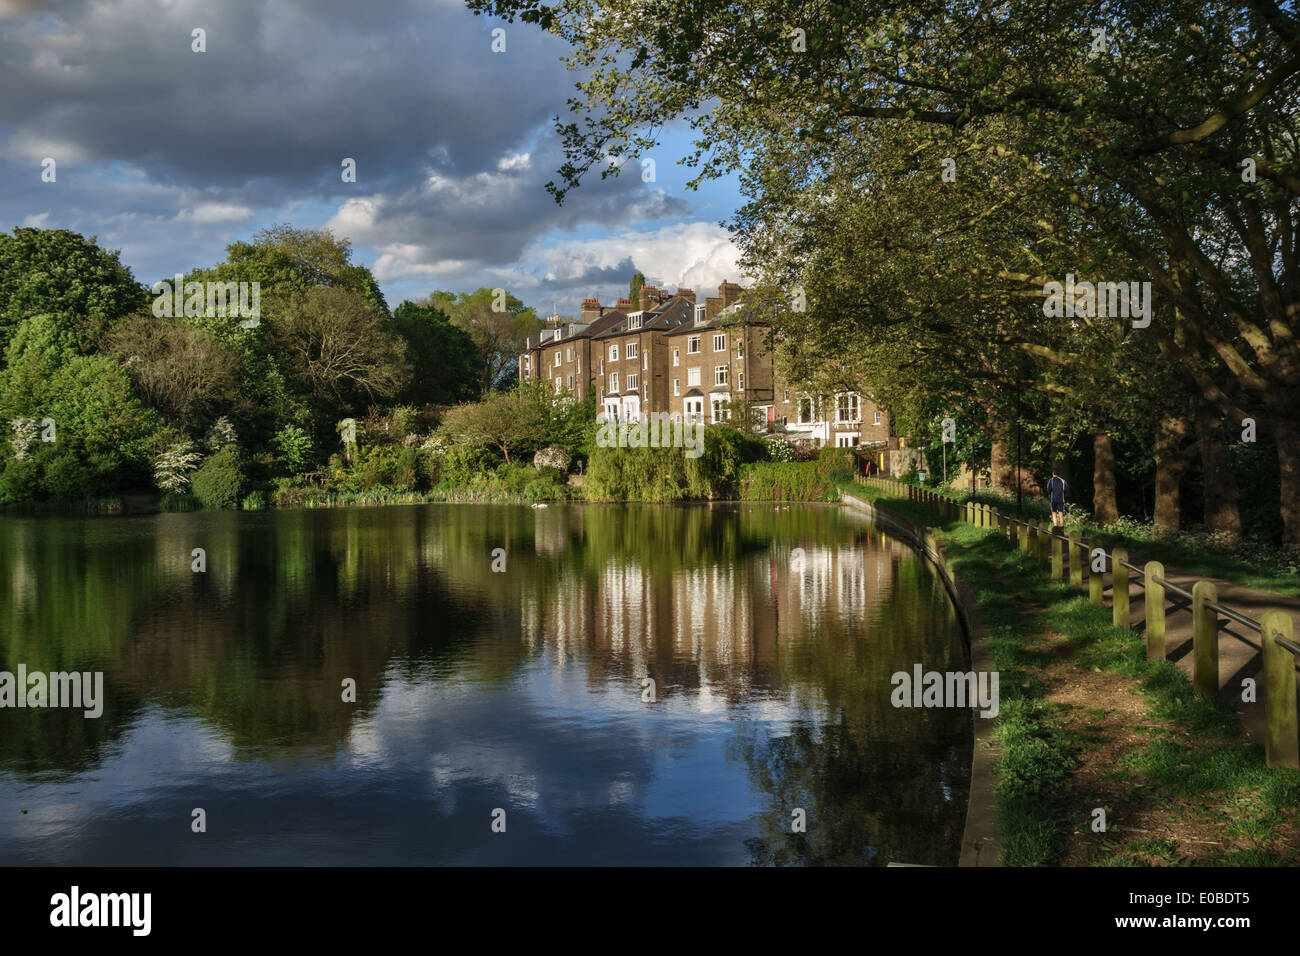 Hampstead No 2 Pond With The Houses Of South Hill Park Gardens Stock Photo Royalty Free Image